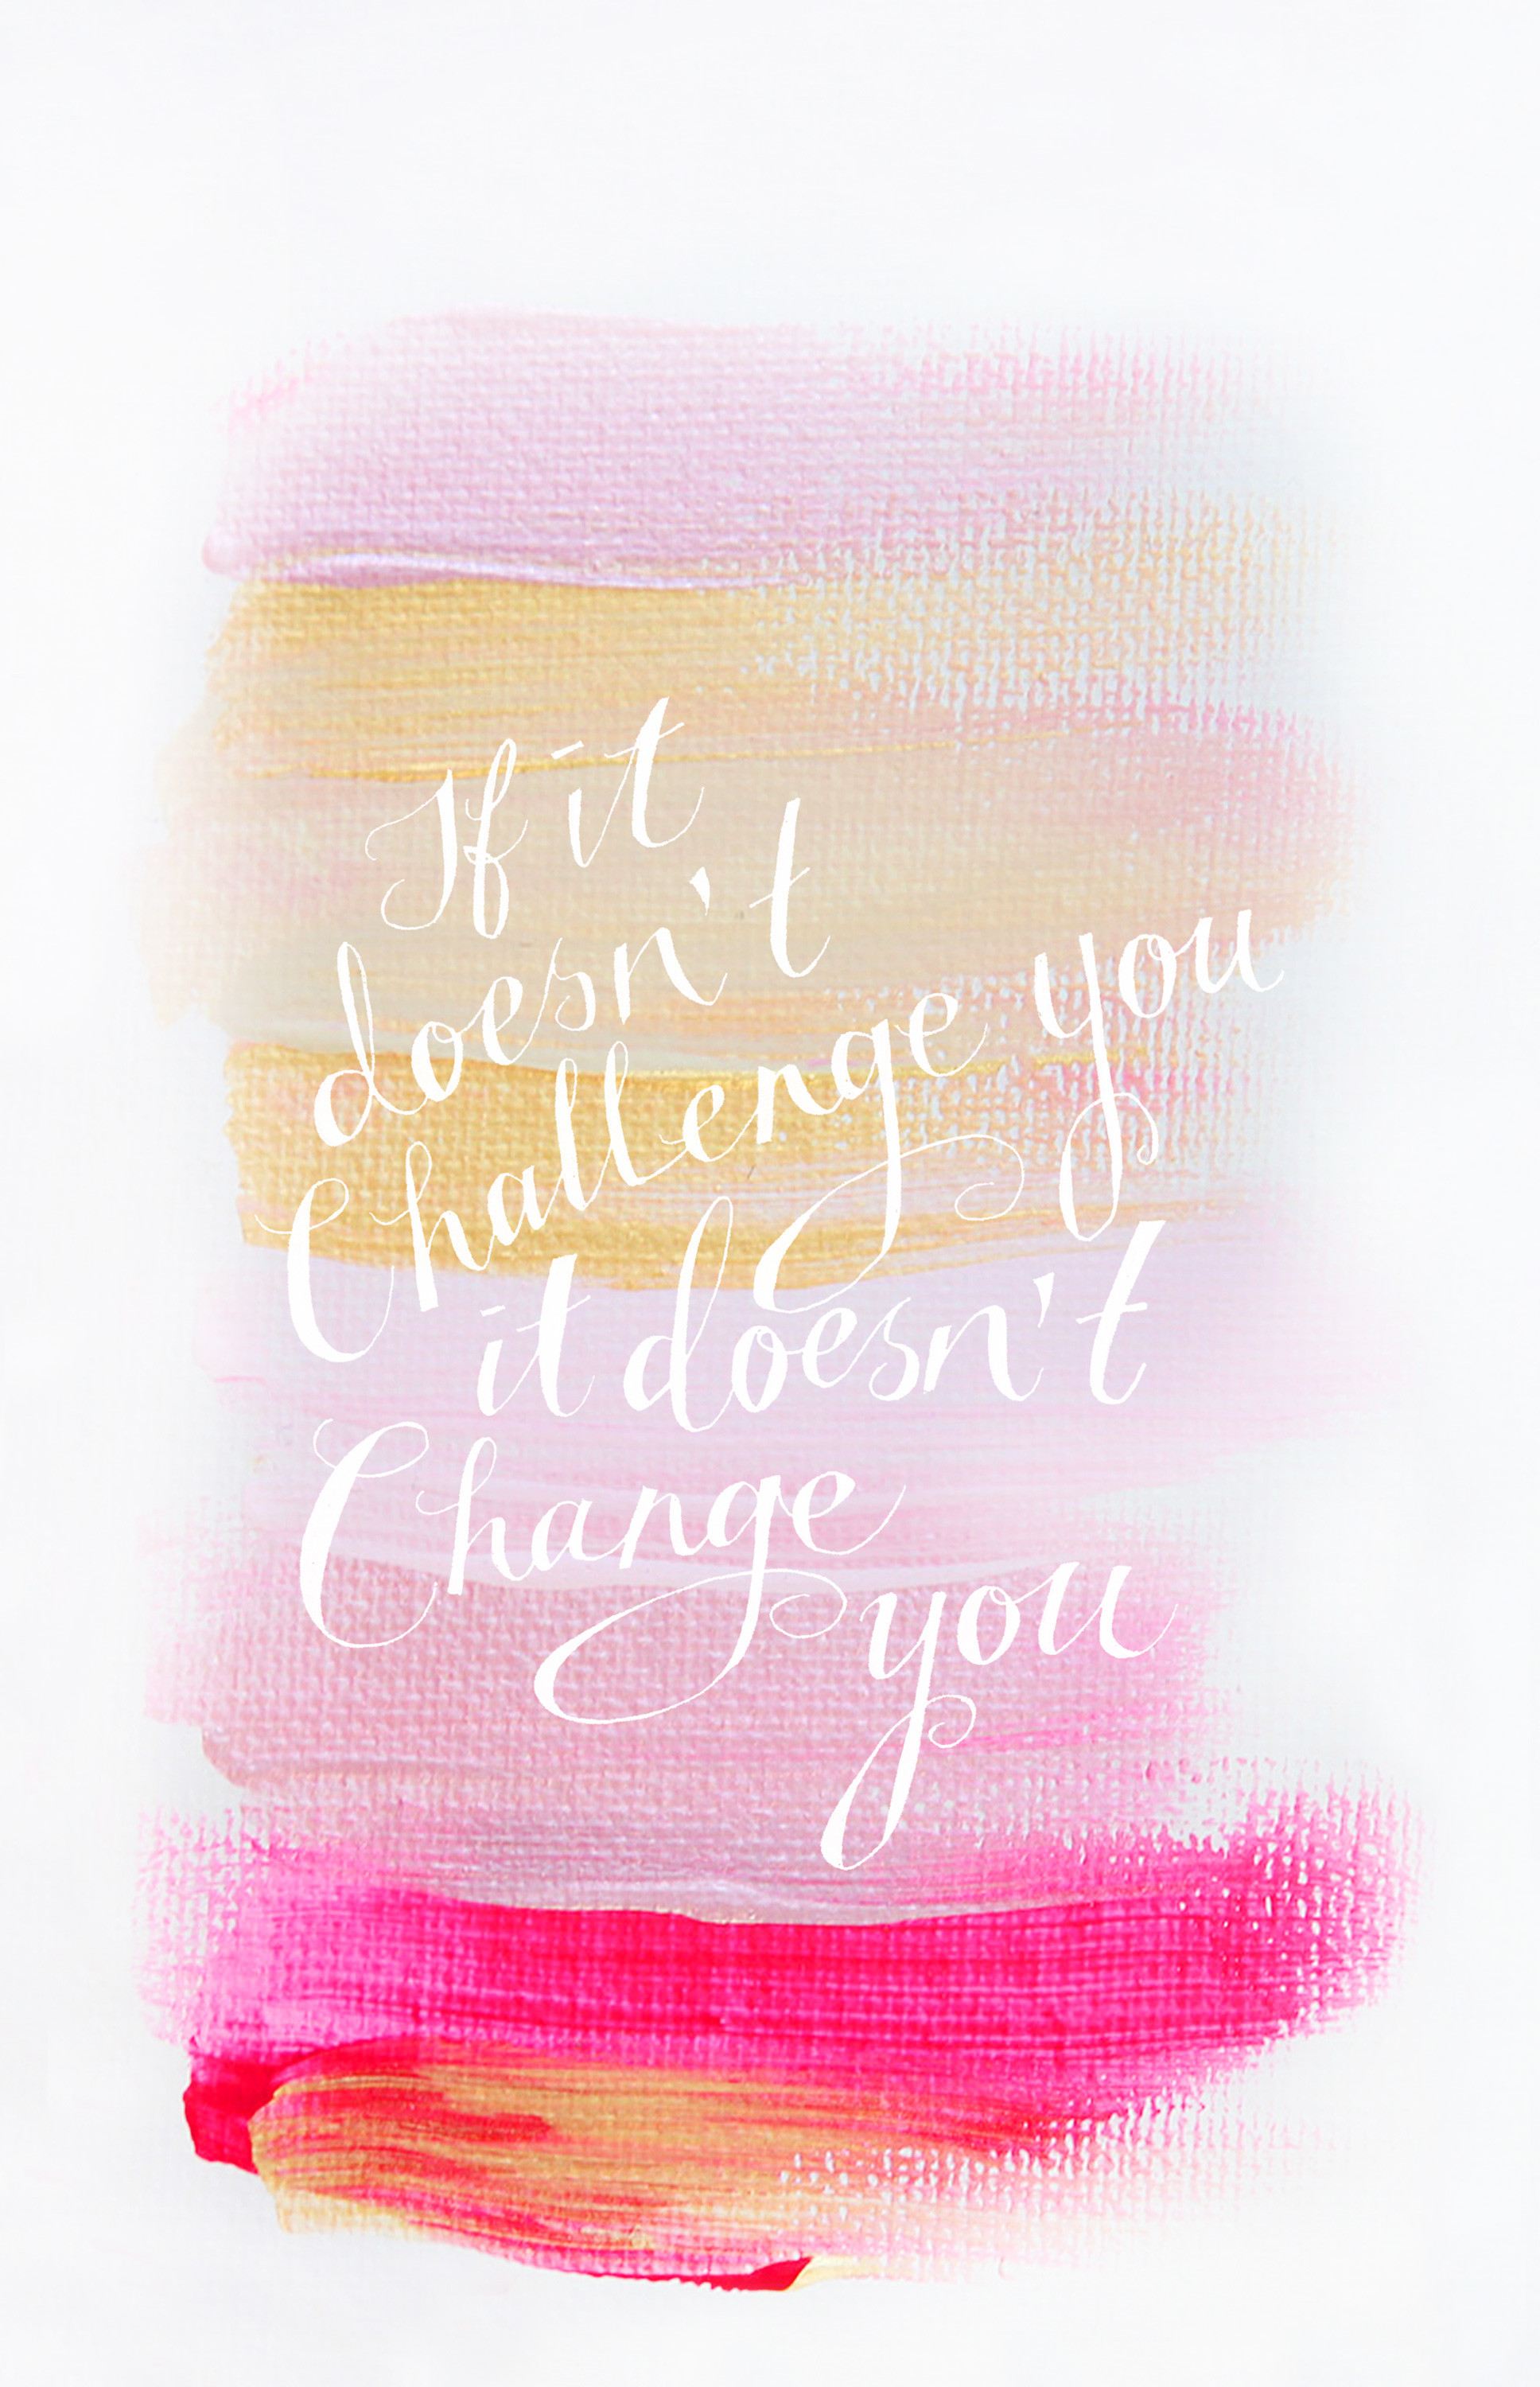 """If It Doesn't Challenge You, It Doesn't Change You"" Quote iPhone wallpaper  background"